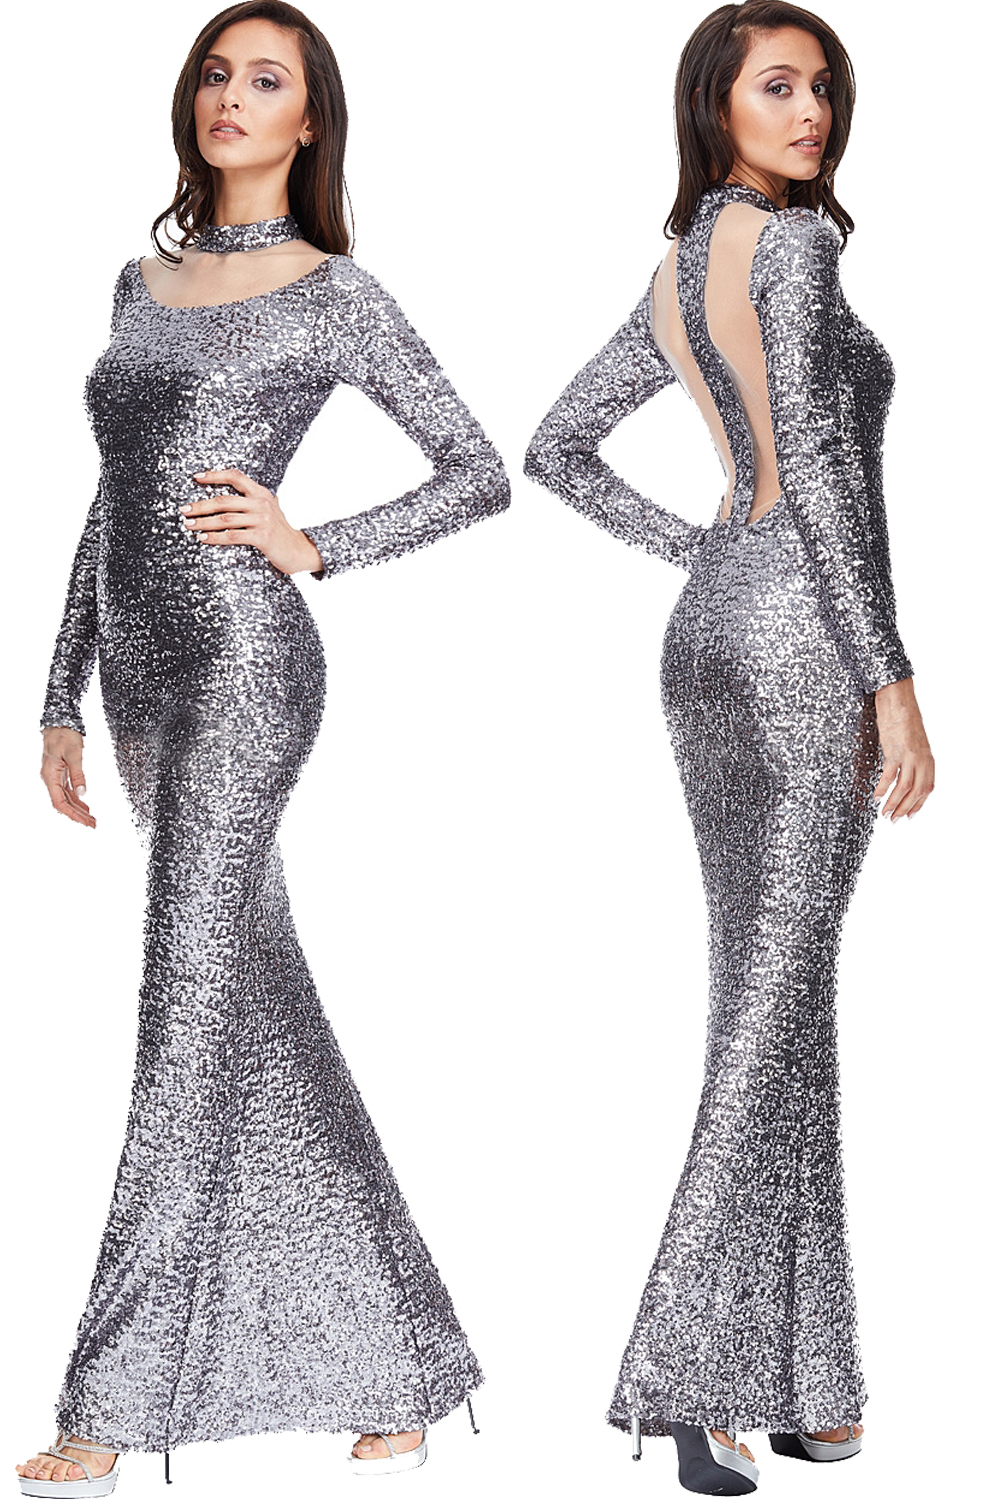 Monroe Silver Sequin Maxi Fishtail Choker Dress